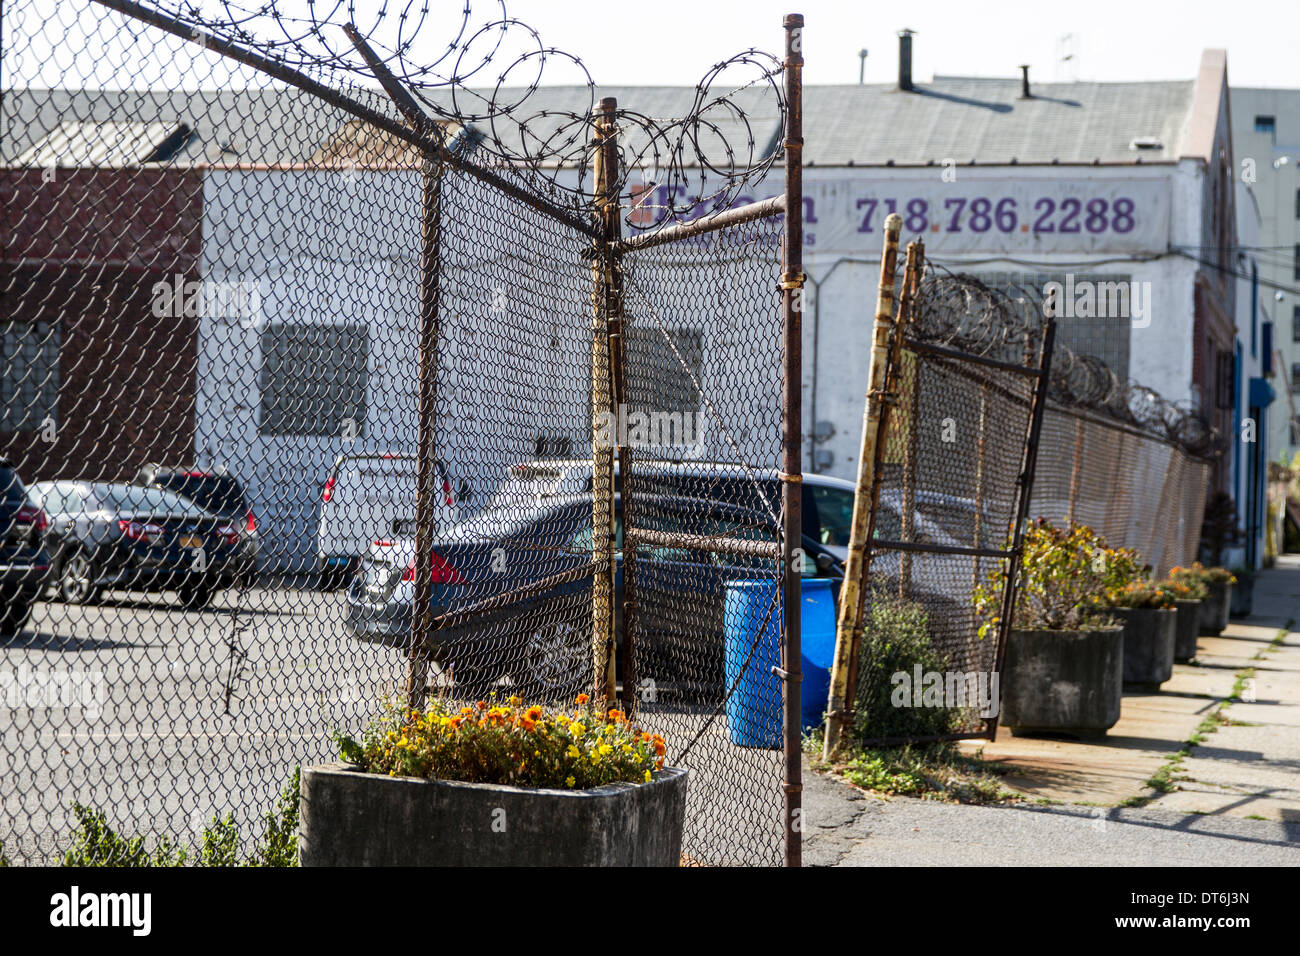 Wire Warehouse Stock Photos & Wire Warehouse Stock Images - Alamy